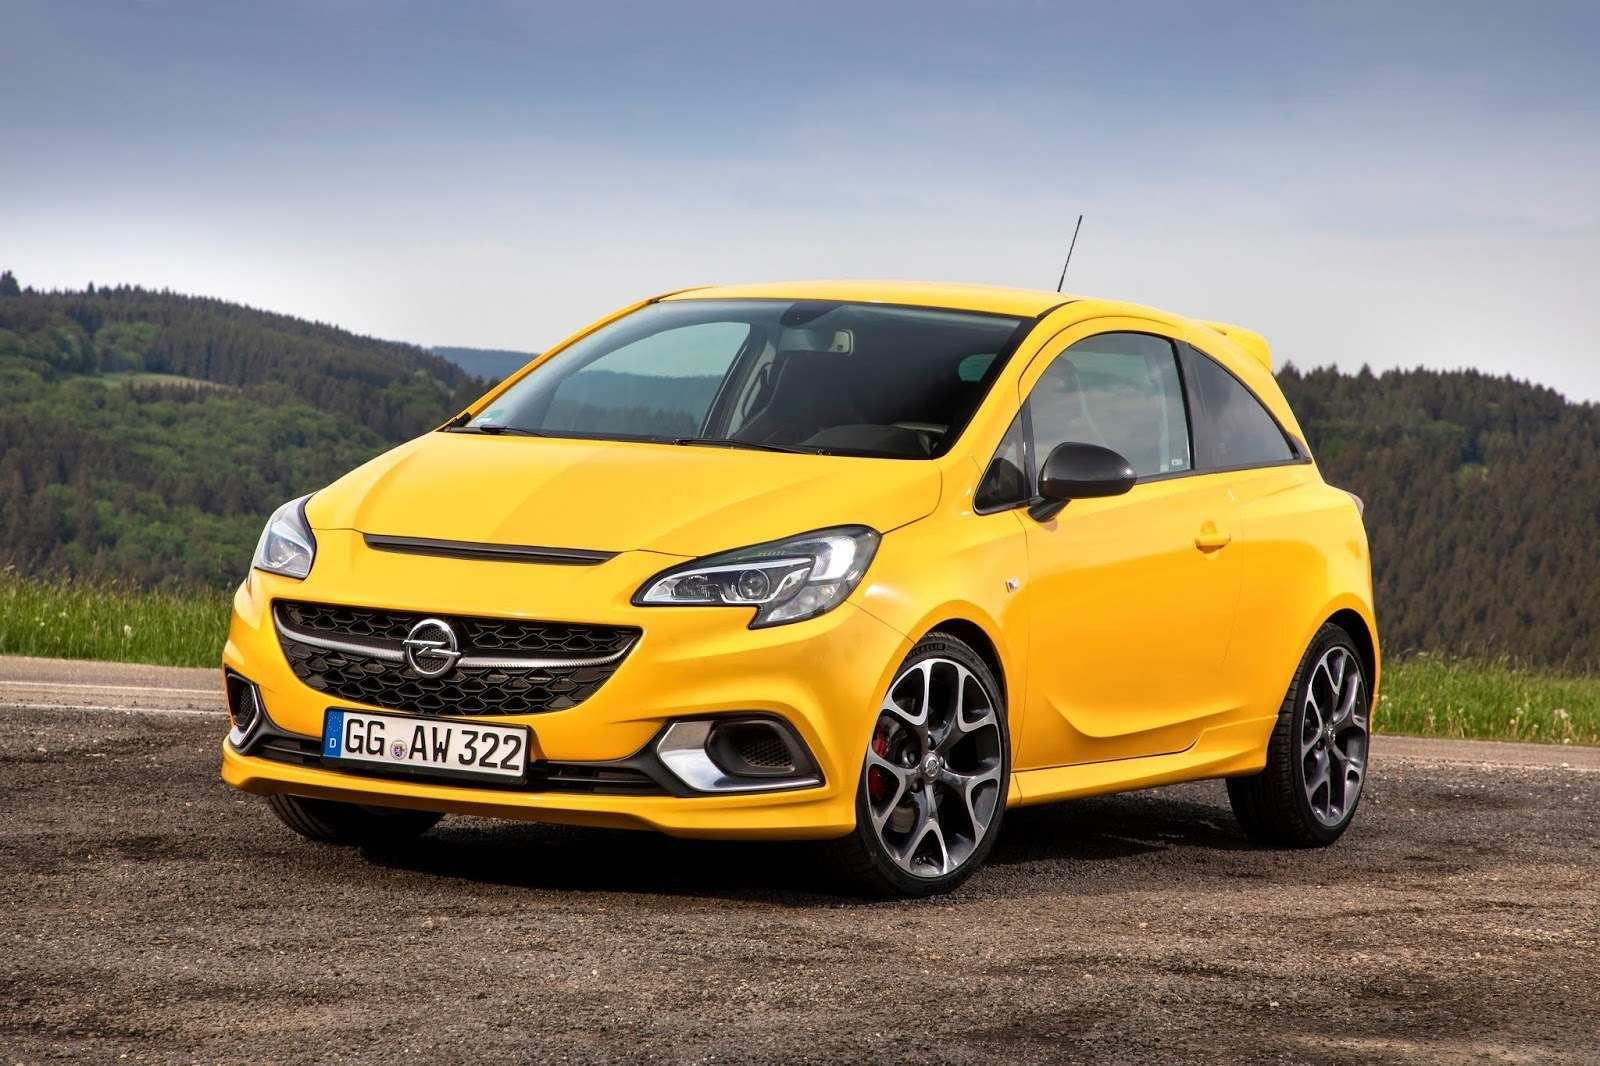 70 Best Review Opel Gsi 2020 Reviews for Opel Gsi 2020